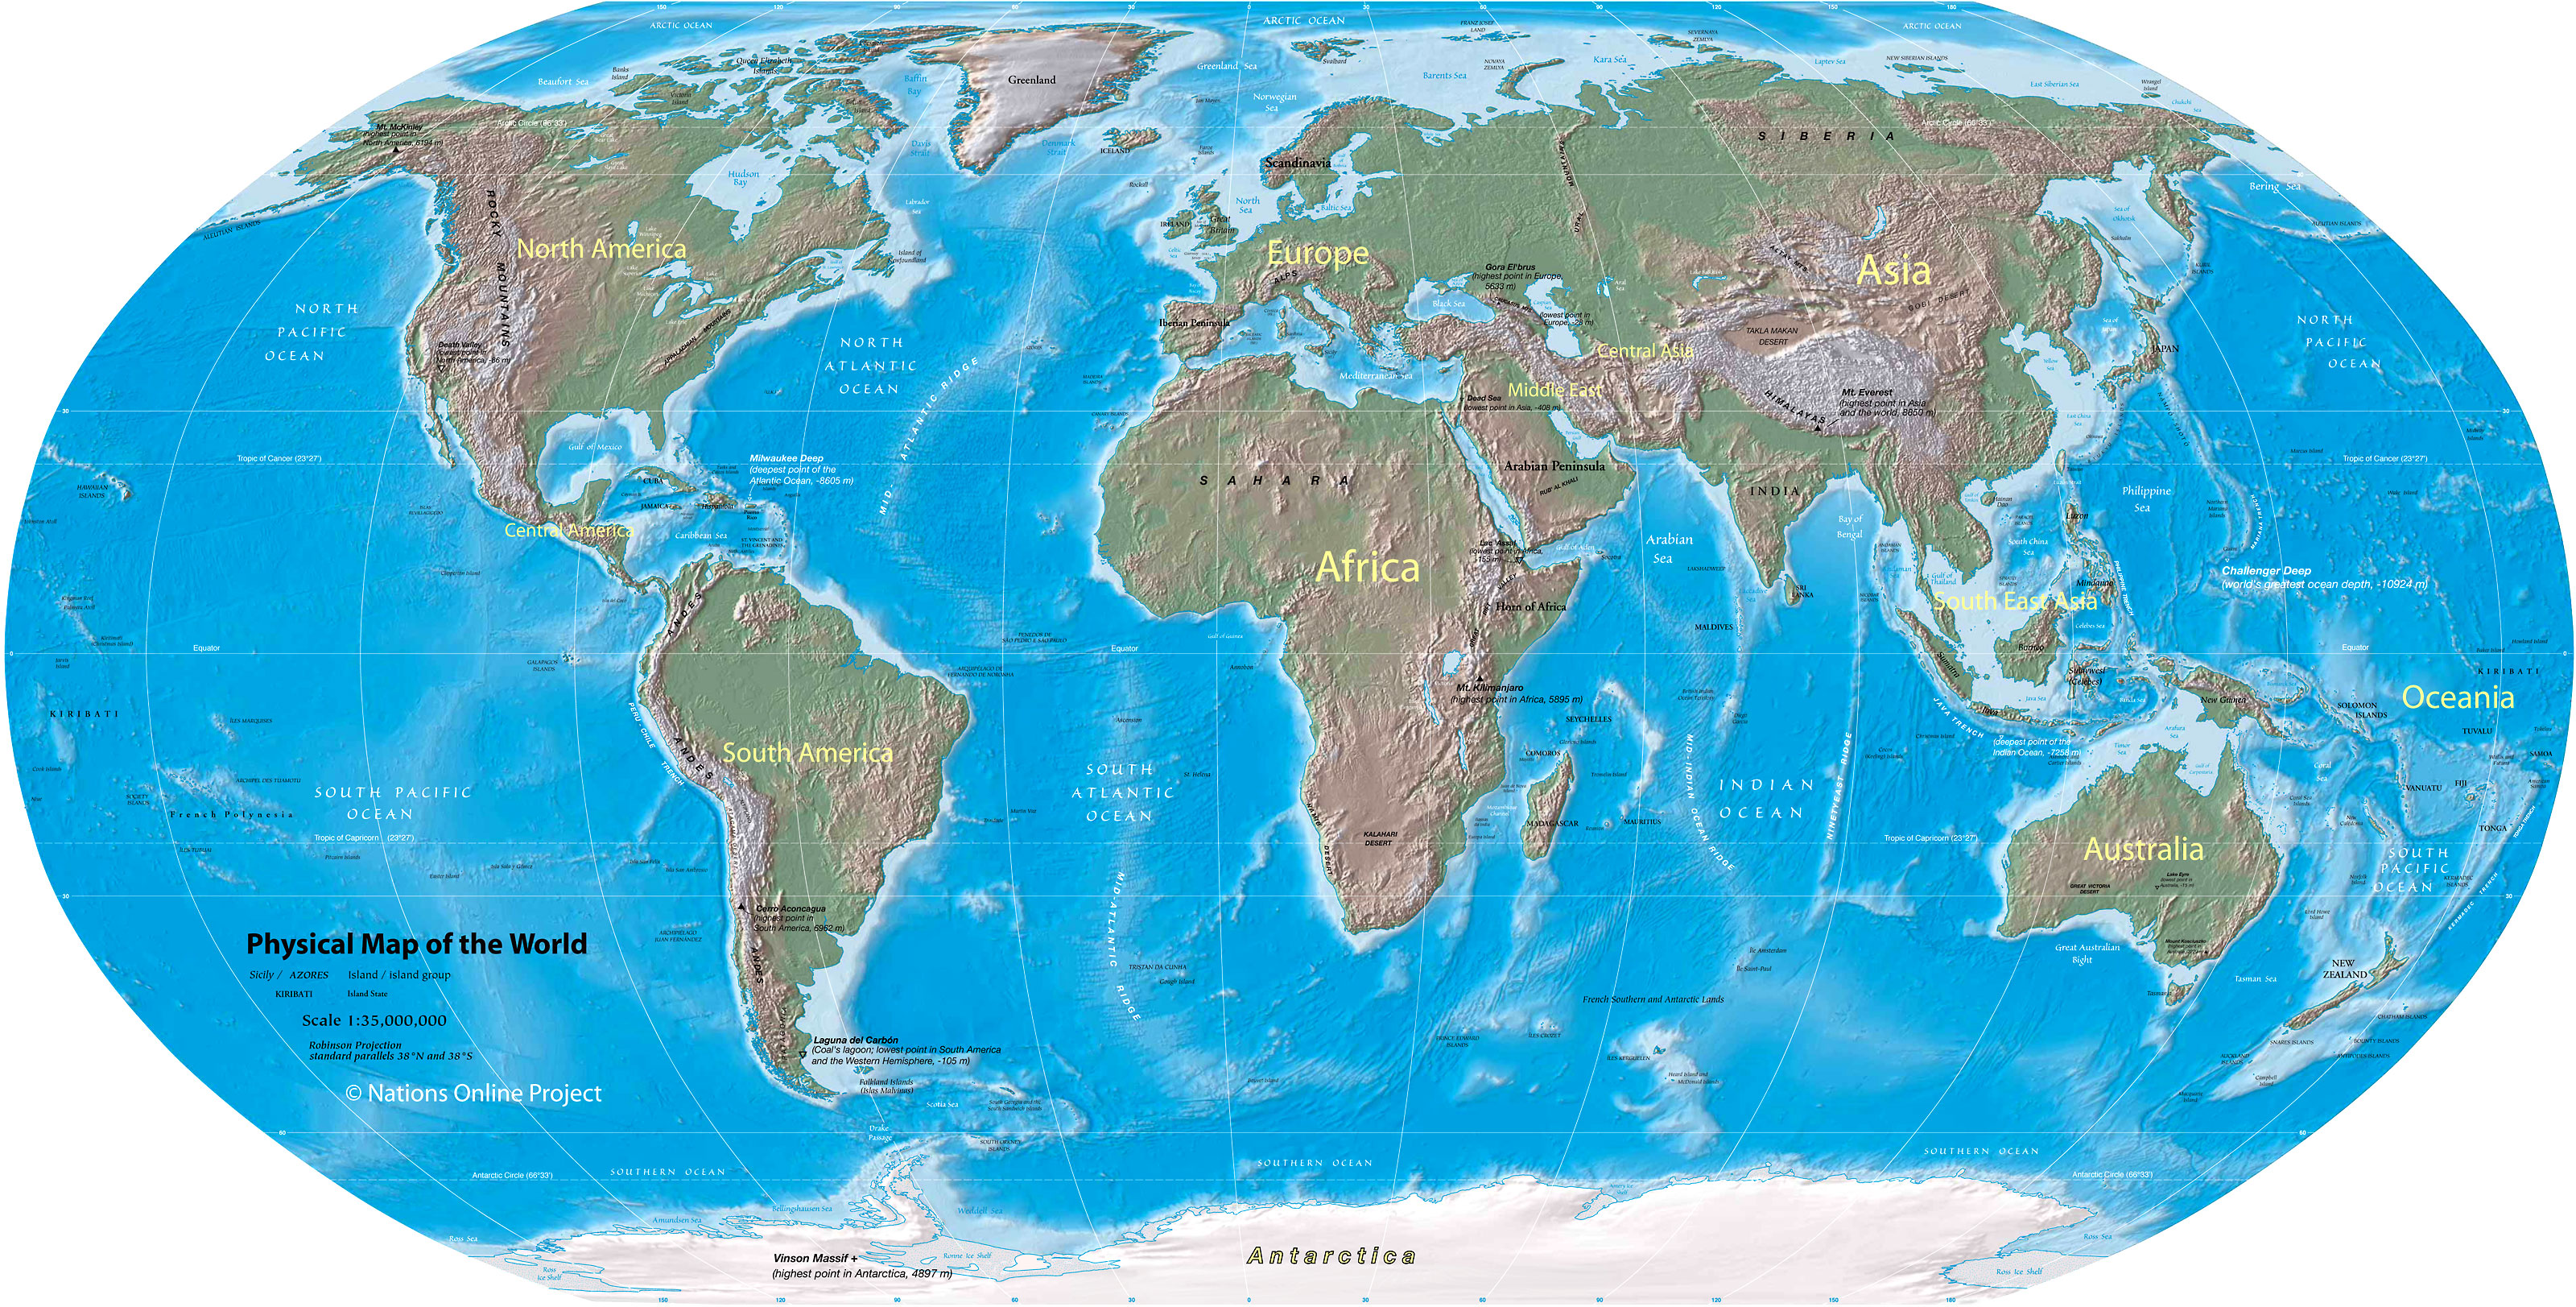 World map physical map of the world nations online project gumiabroncs Choice Image